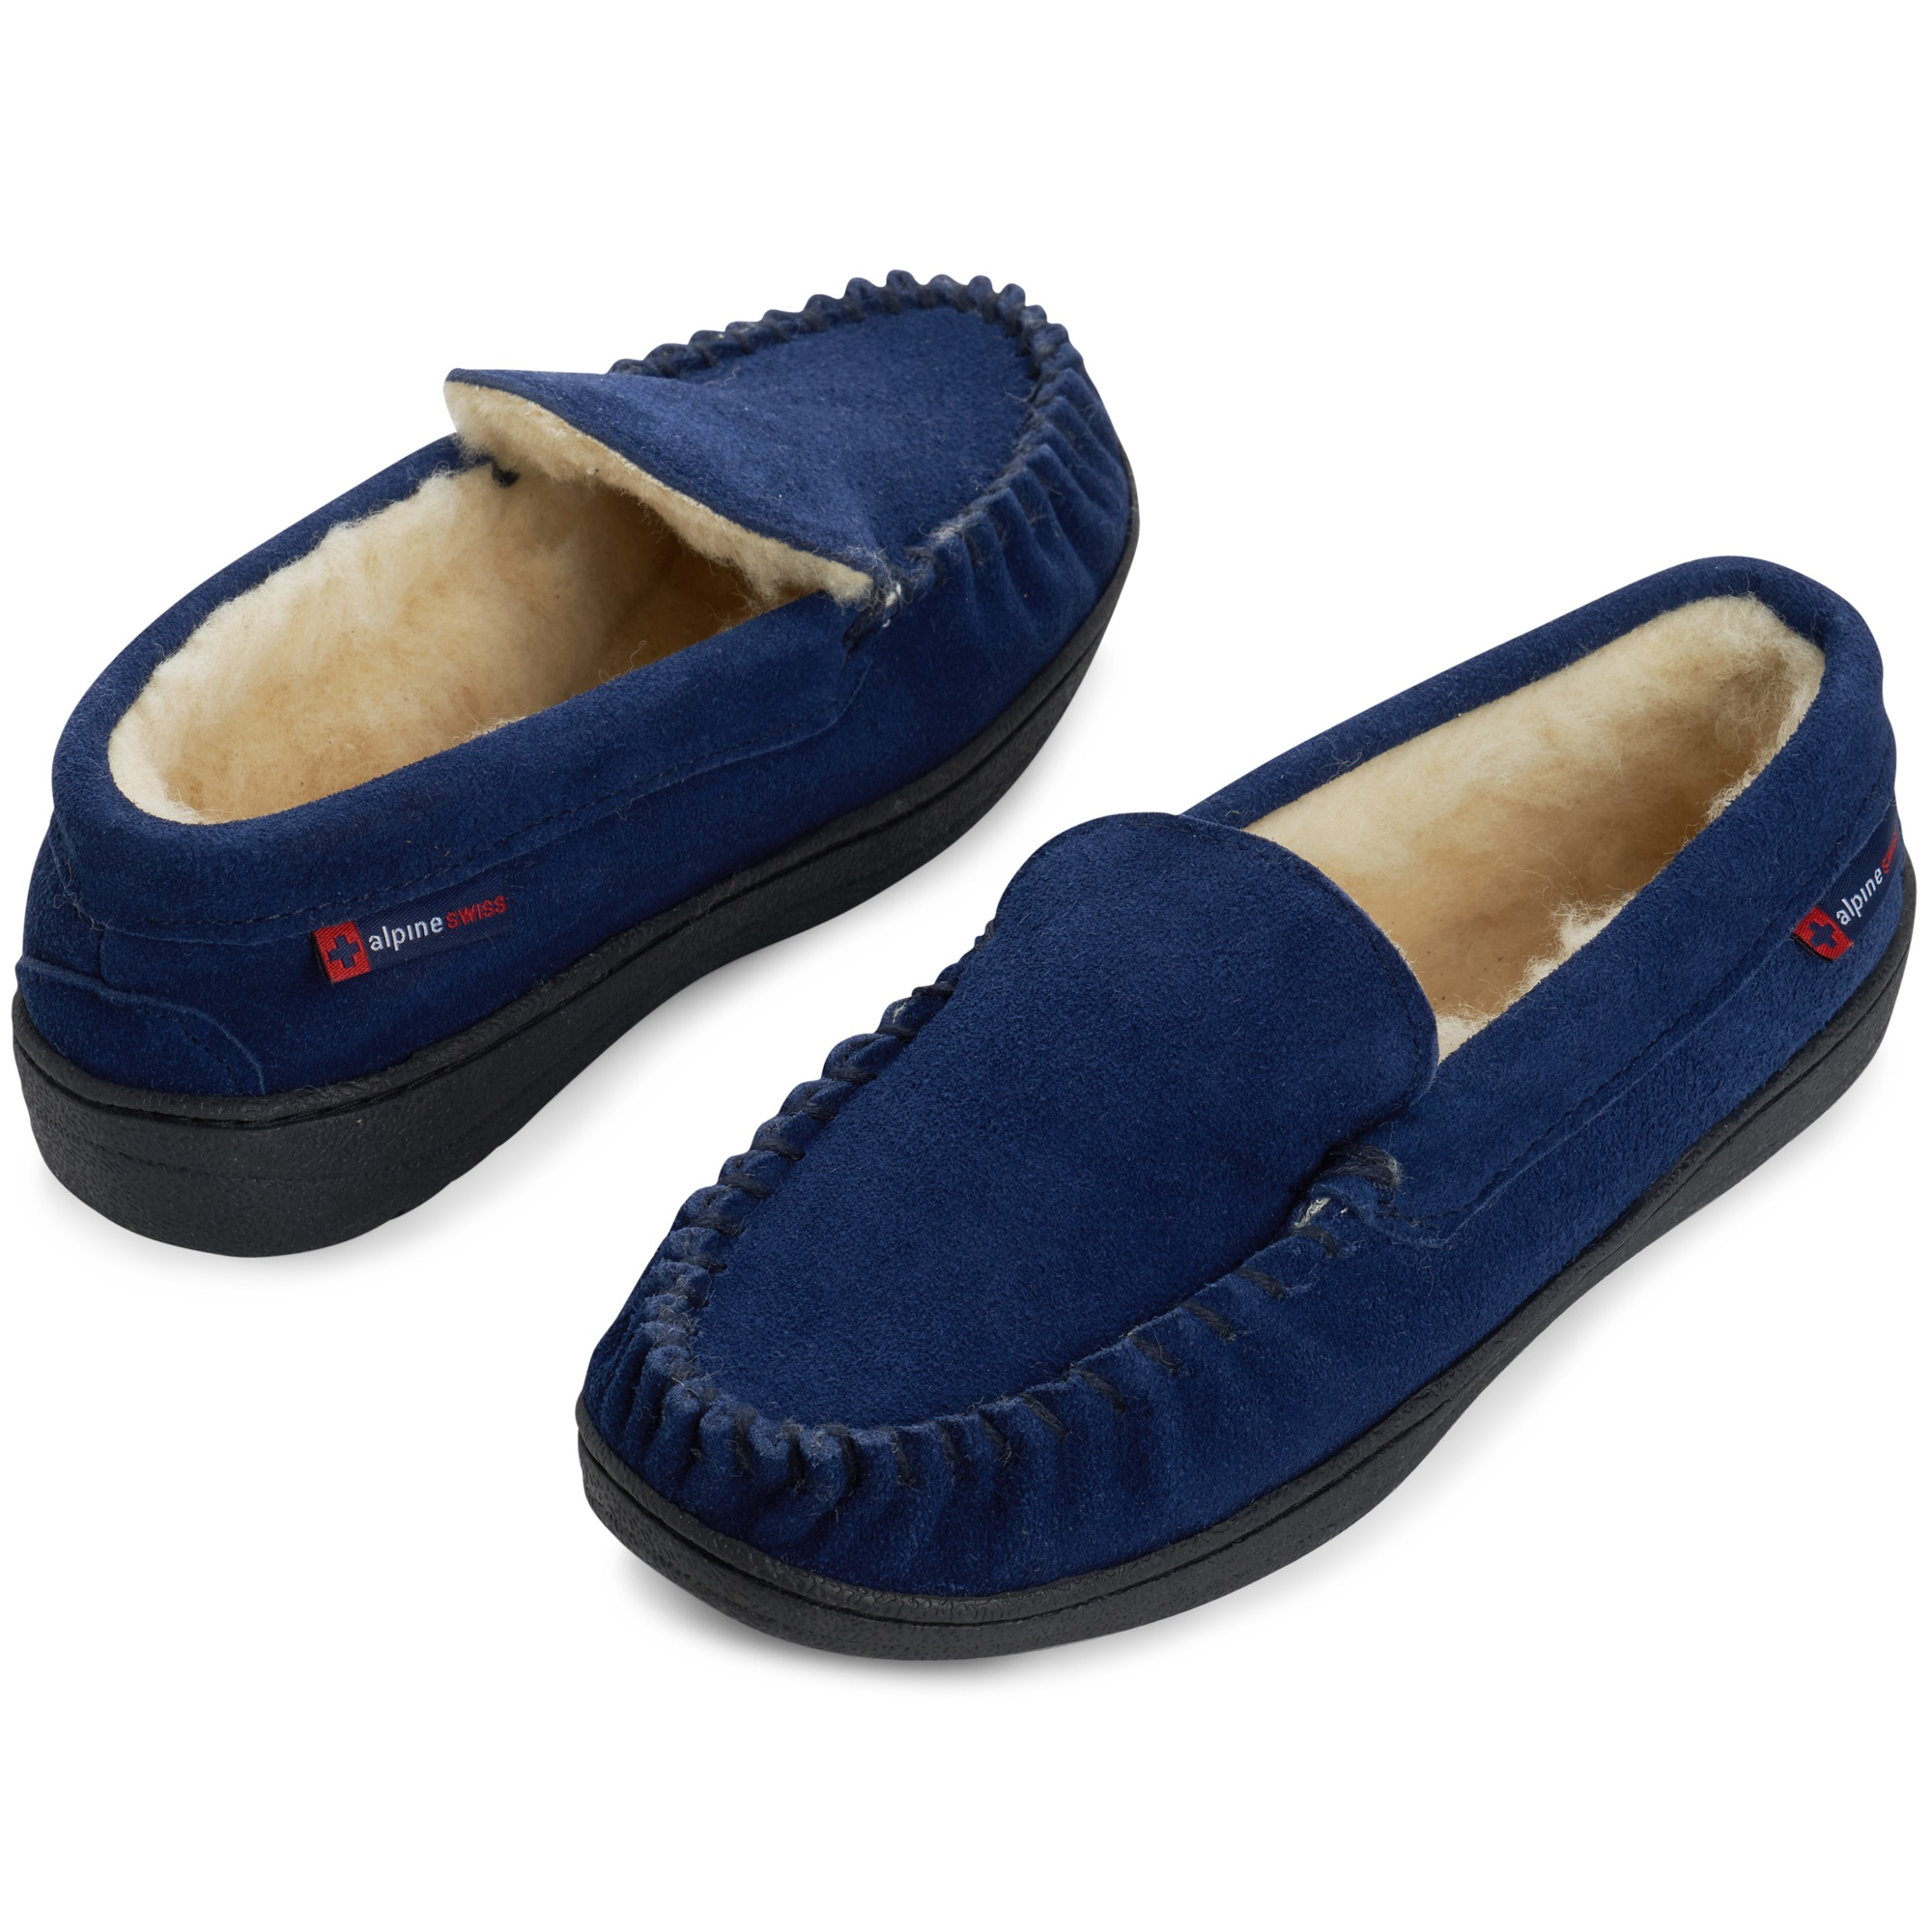 Alpine-Swiss-Yukon-Mens-Suede-Shearling-Moccasin-Slippers-Moc-Toe-Slip-On-Shoes thumbnail 36